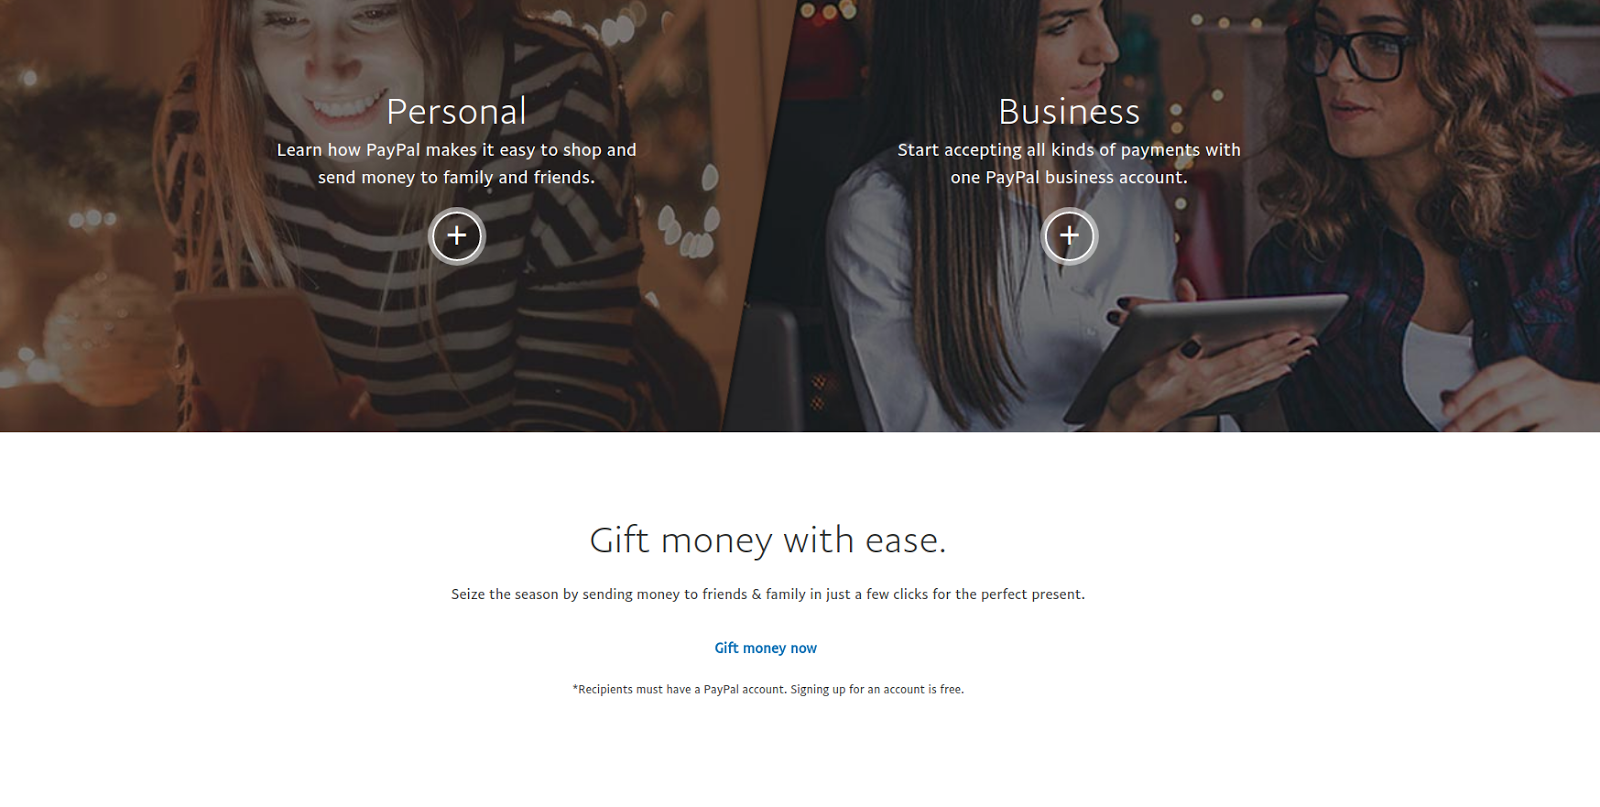 How to Integrate a Payment Gateway in Your Mobile Application